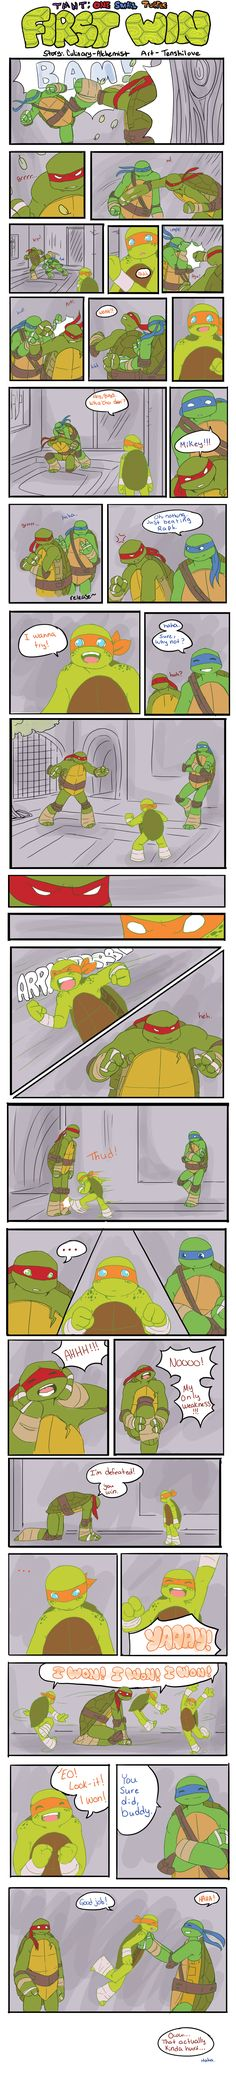 TMNT: One Small Turtle : First Win by Tenshilove.deviantart.com on @DeviantArt